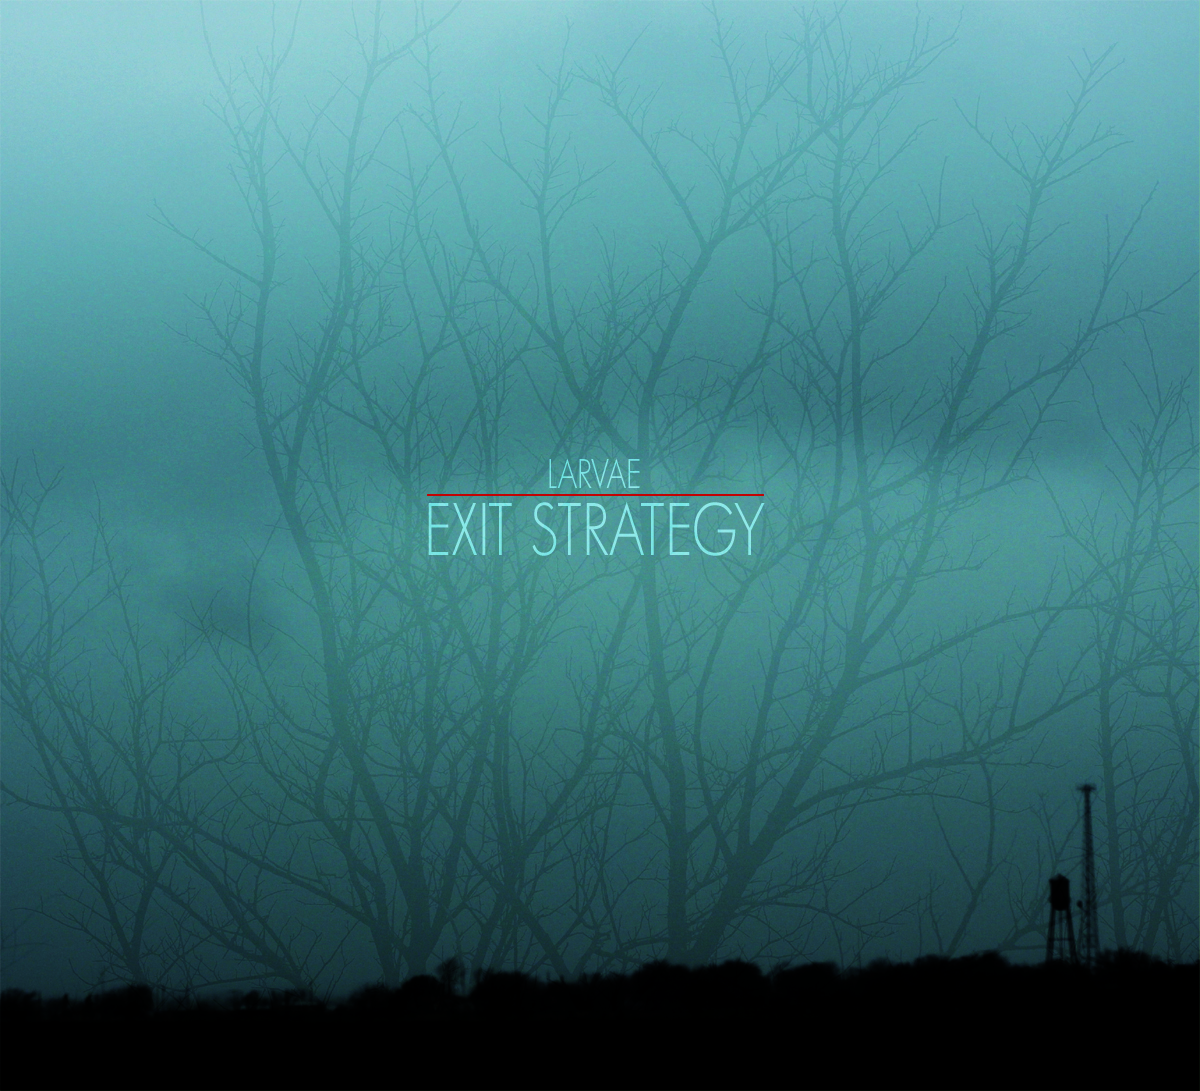 Exit Strategy - 1.Locked from the Inside2.Her Hair3.Vows & Promises4.Remarkable5.The Switch6.The Life You Waste May Be Your Own7.N-18.Quitter9.Easy10.Exit StrategyReleased by Ad Noiseam 2012ADN160